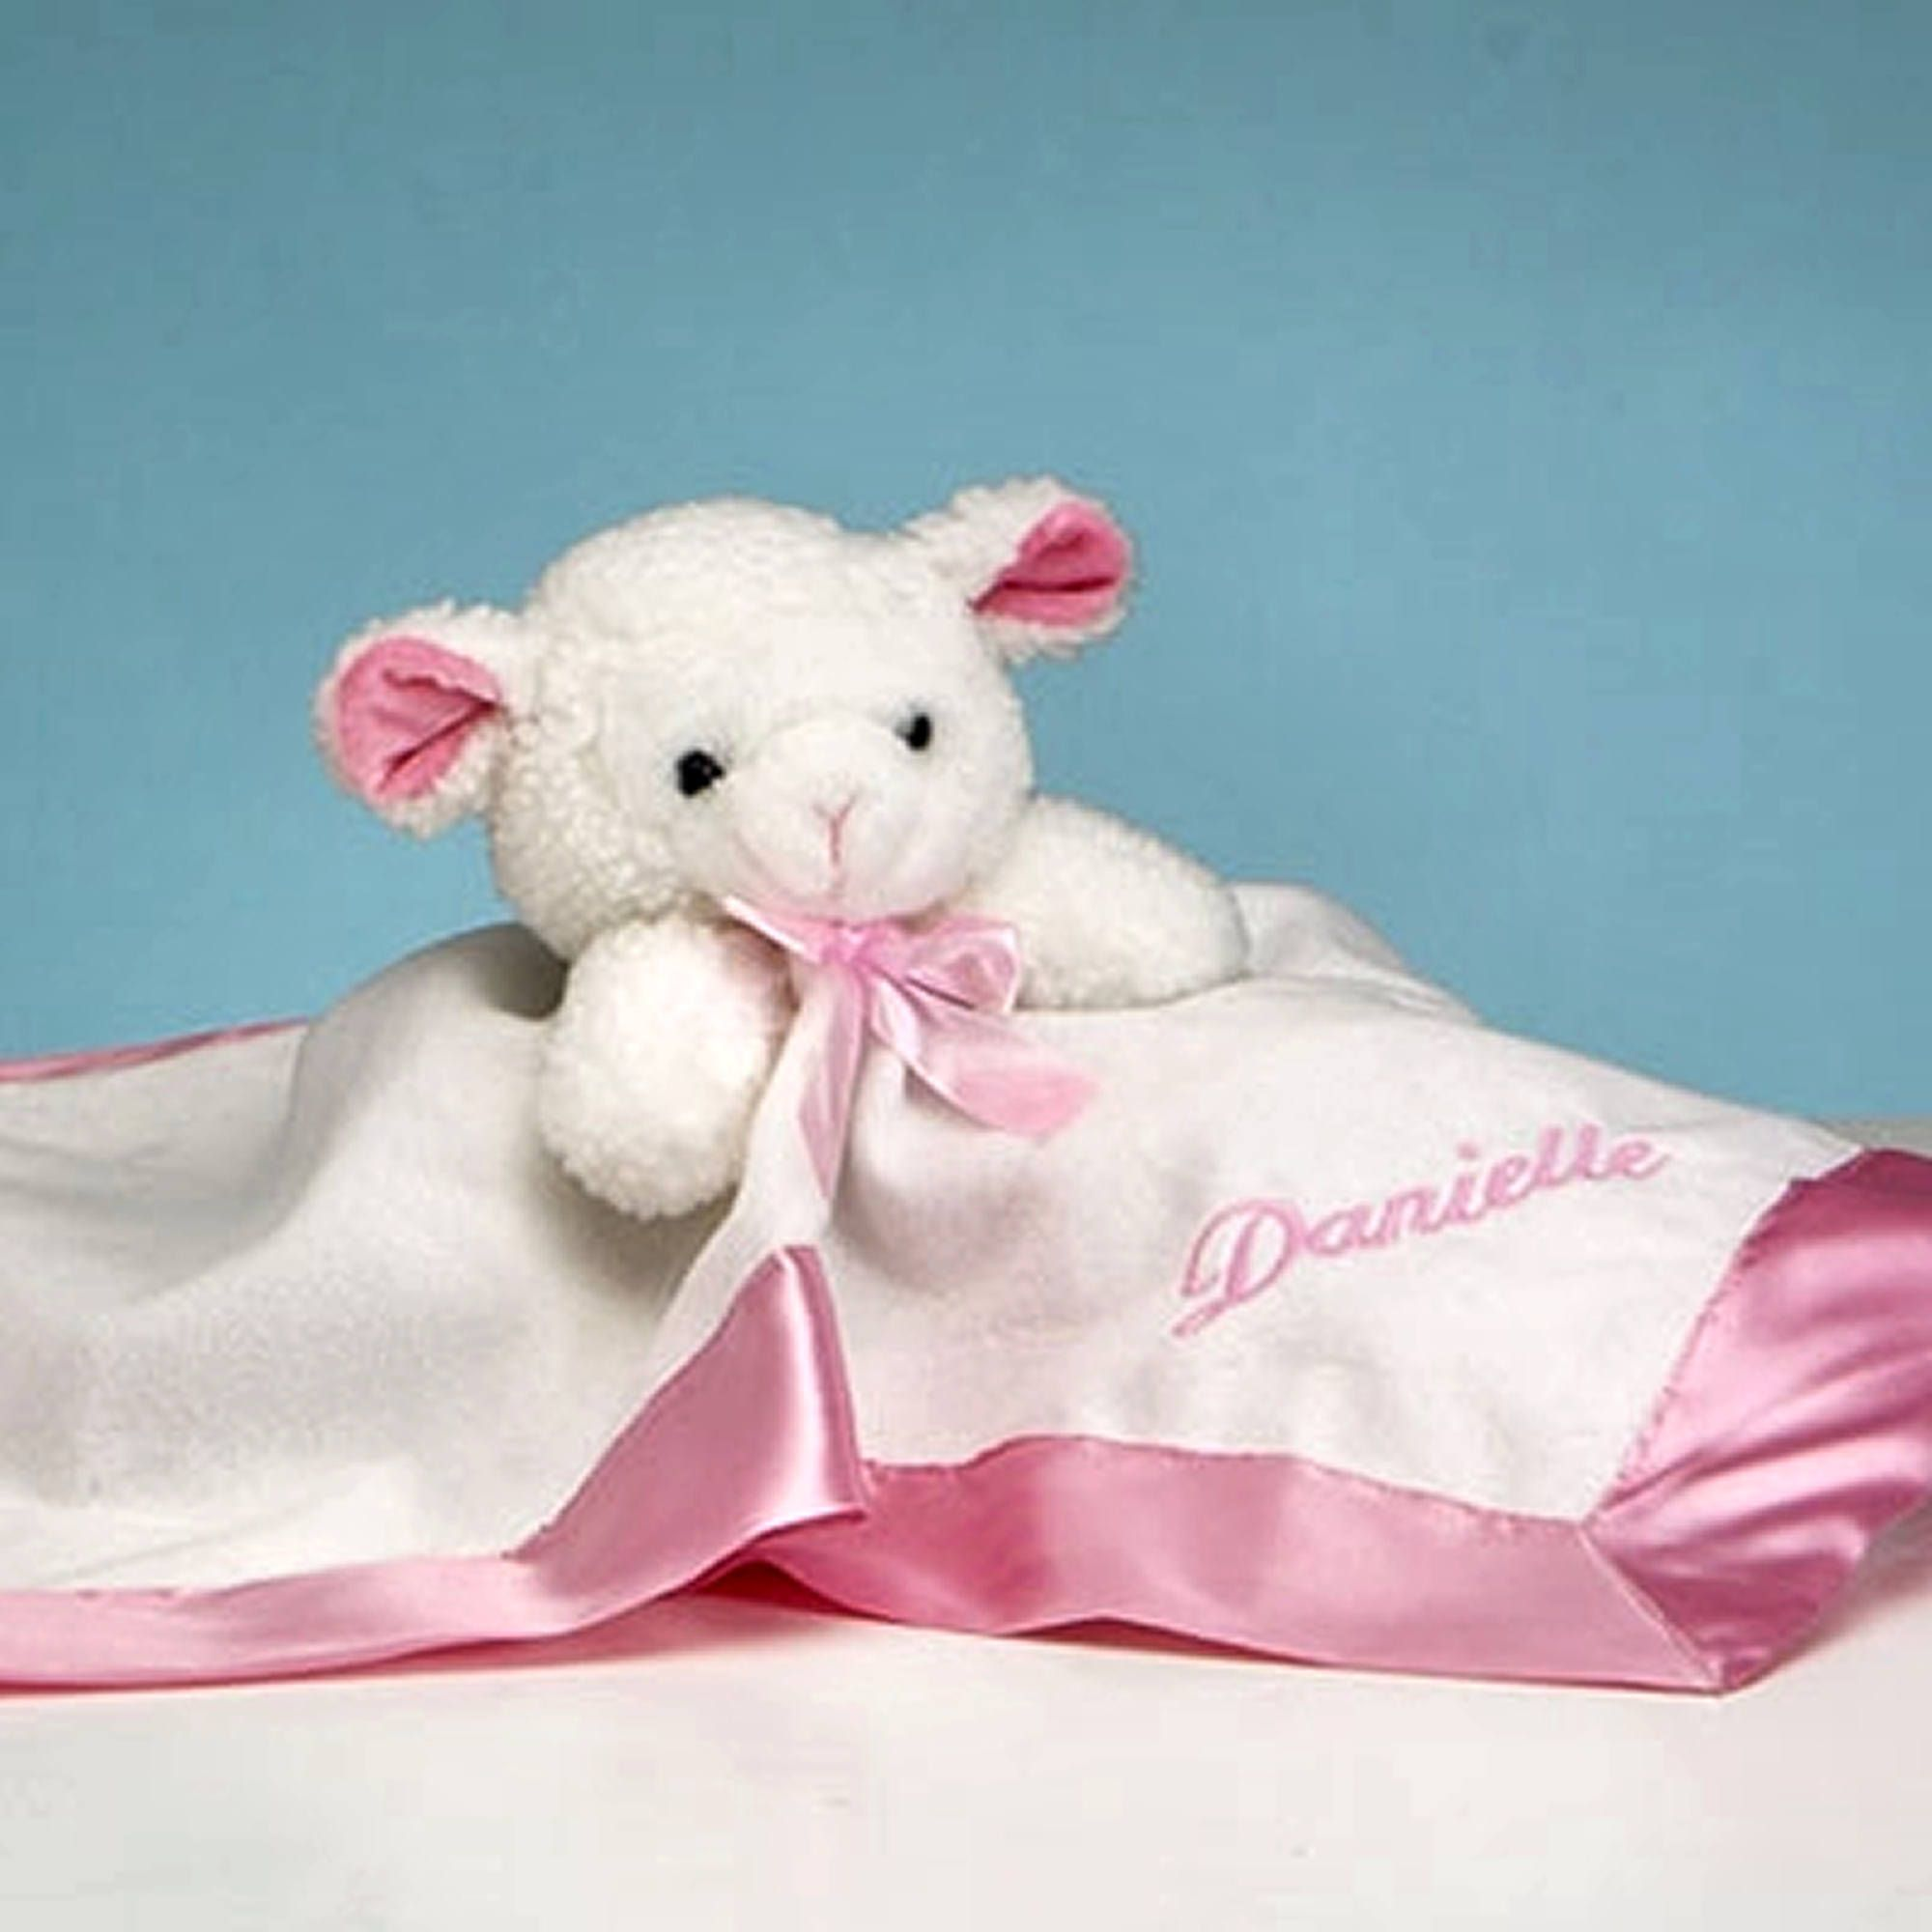 Personalized baby lovie security blanket pink lamb gifts personalized baby lovie security blanket pink lamb negle Gallery